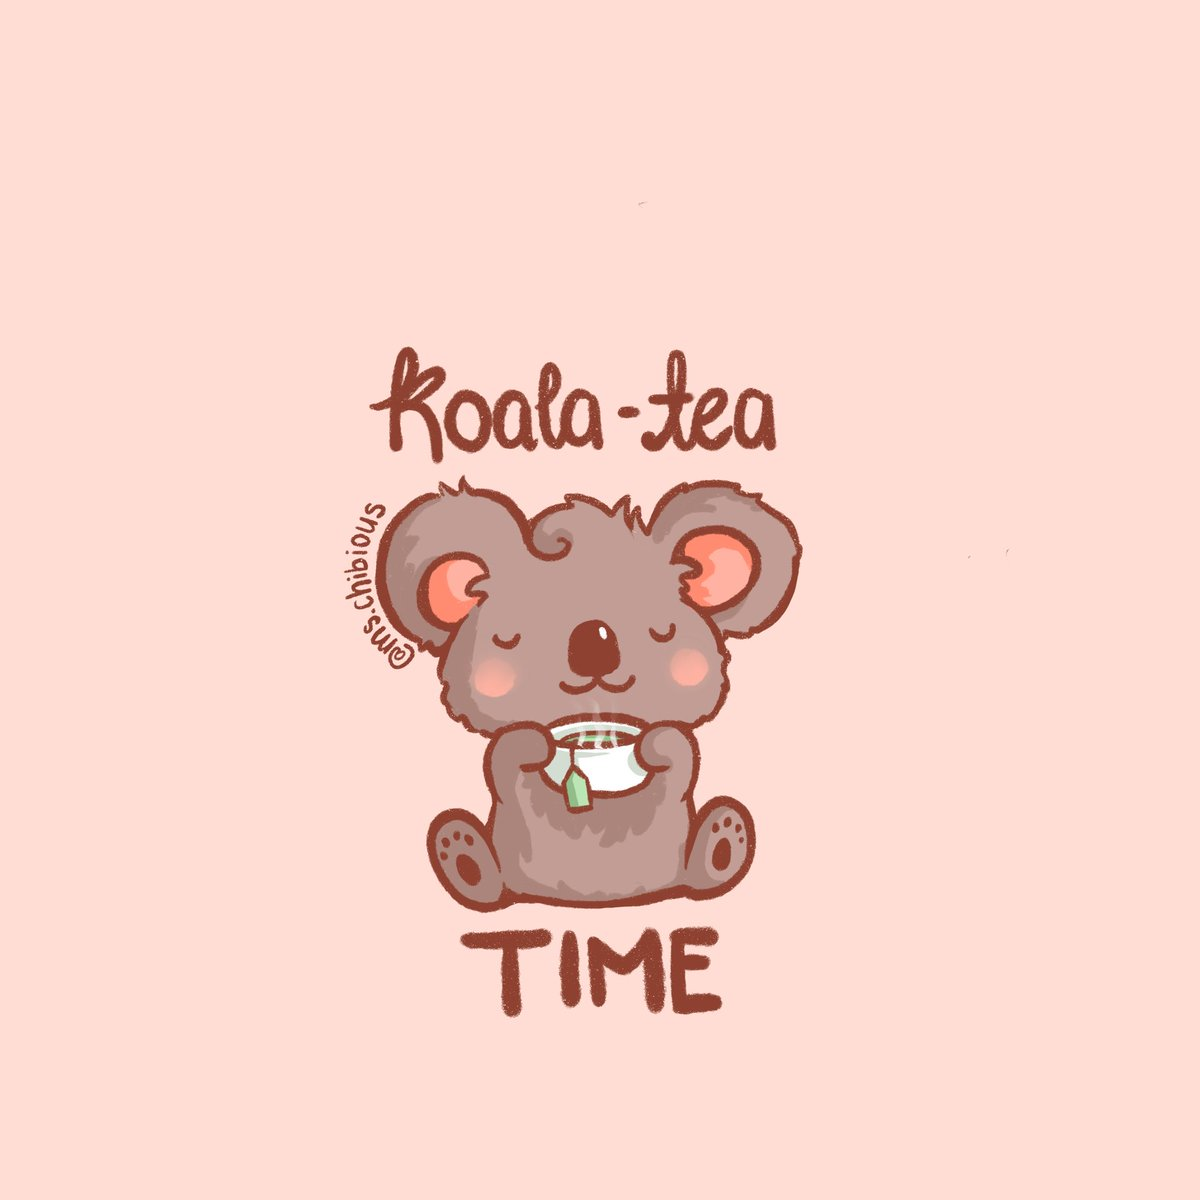 It's almost time for the holidays   Enjoy spending #koalatea time with family and friends but don't forget to make time for you and self-care! #wholesome #cuteart #koalaspic.twitter.com/8PKoQDYD0v